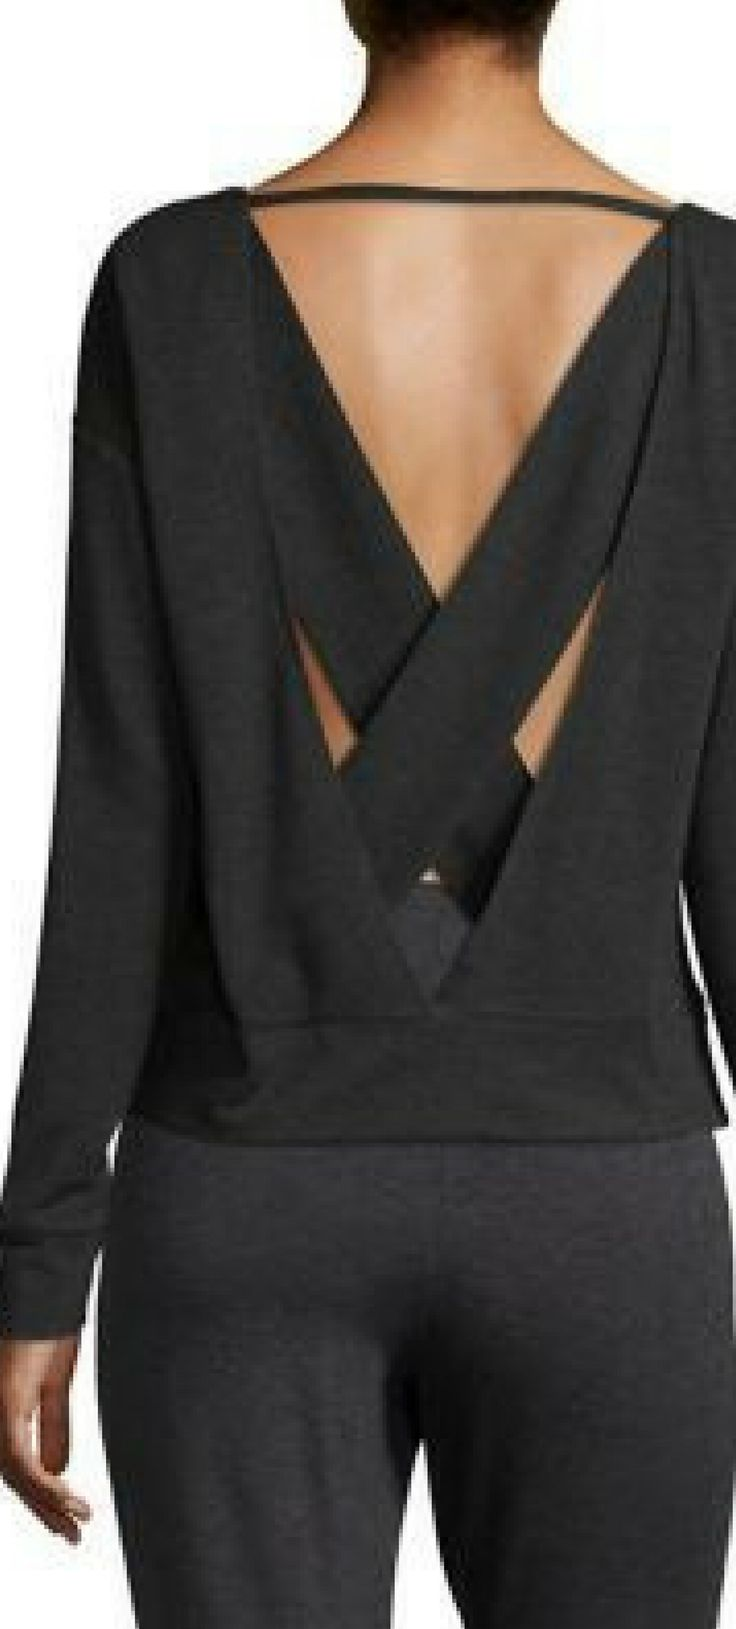 Alo Yoga Uplift Cross-Back Sweatshirt Open cross-back active sweatshirt. #workoutclothes #ad #womensfashion